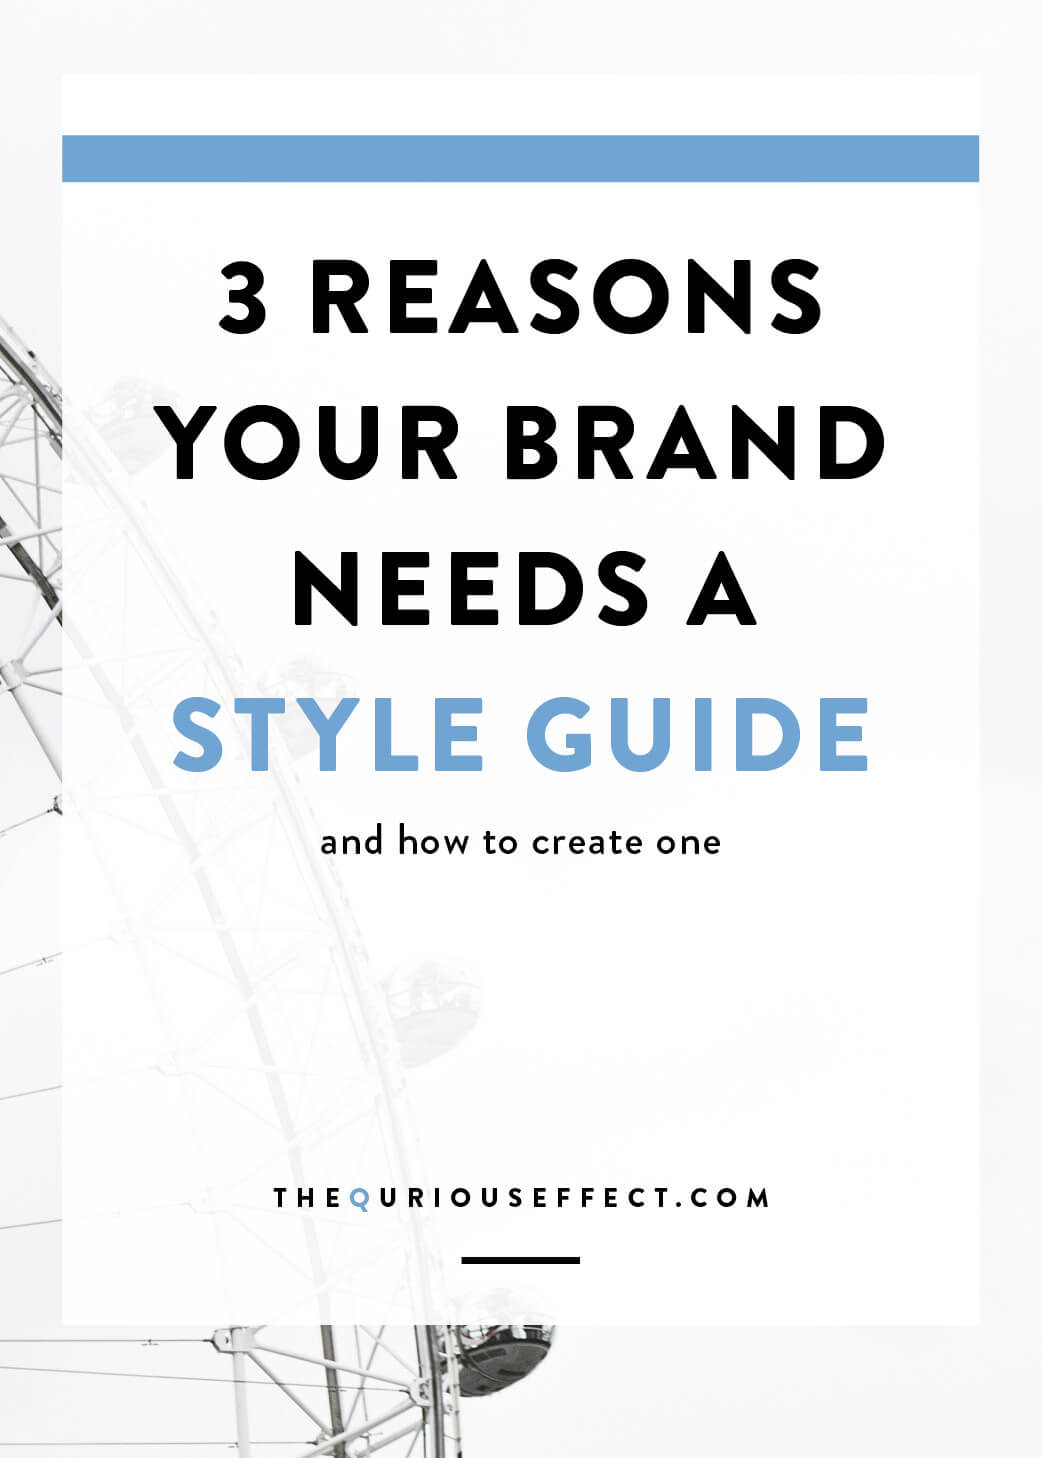 3 Reasons your brand needs a style guide and how to create one of your own. By The Qurious Effect, Squarespace and brand design.